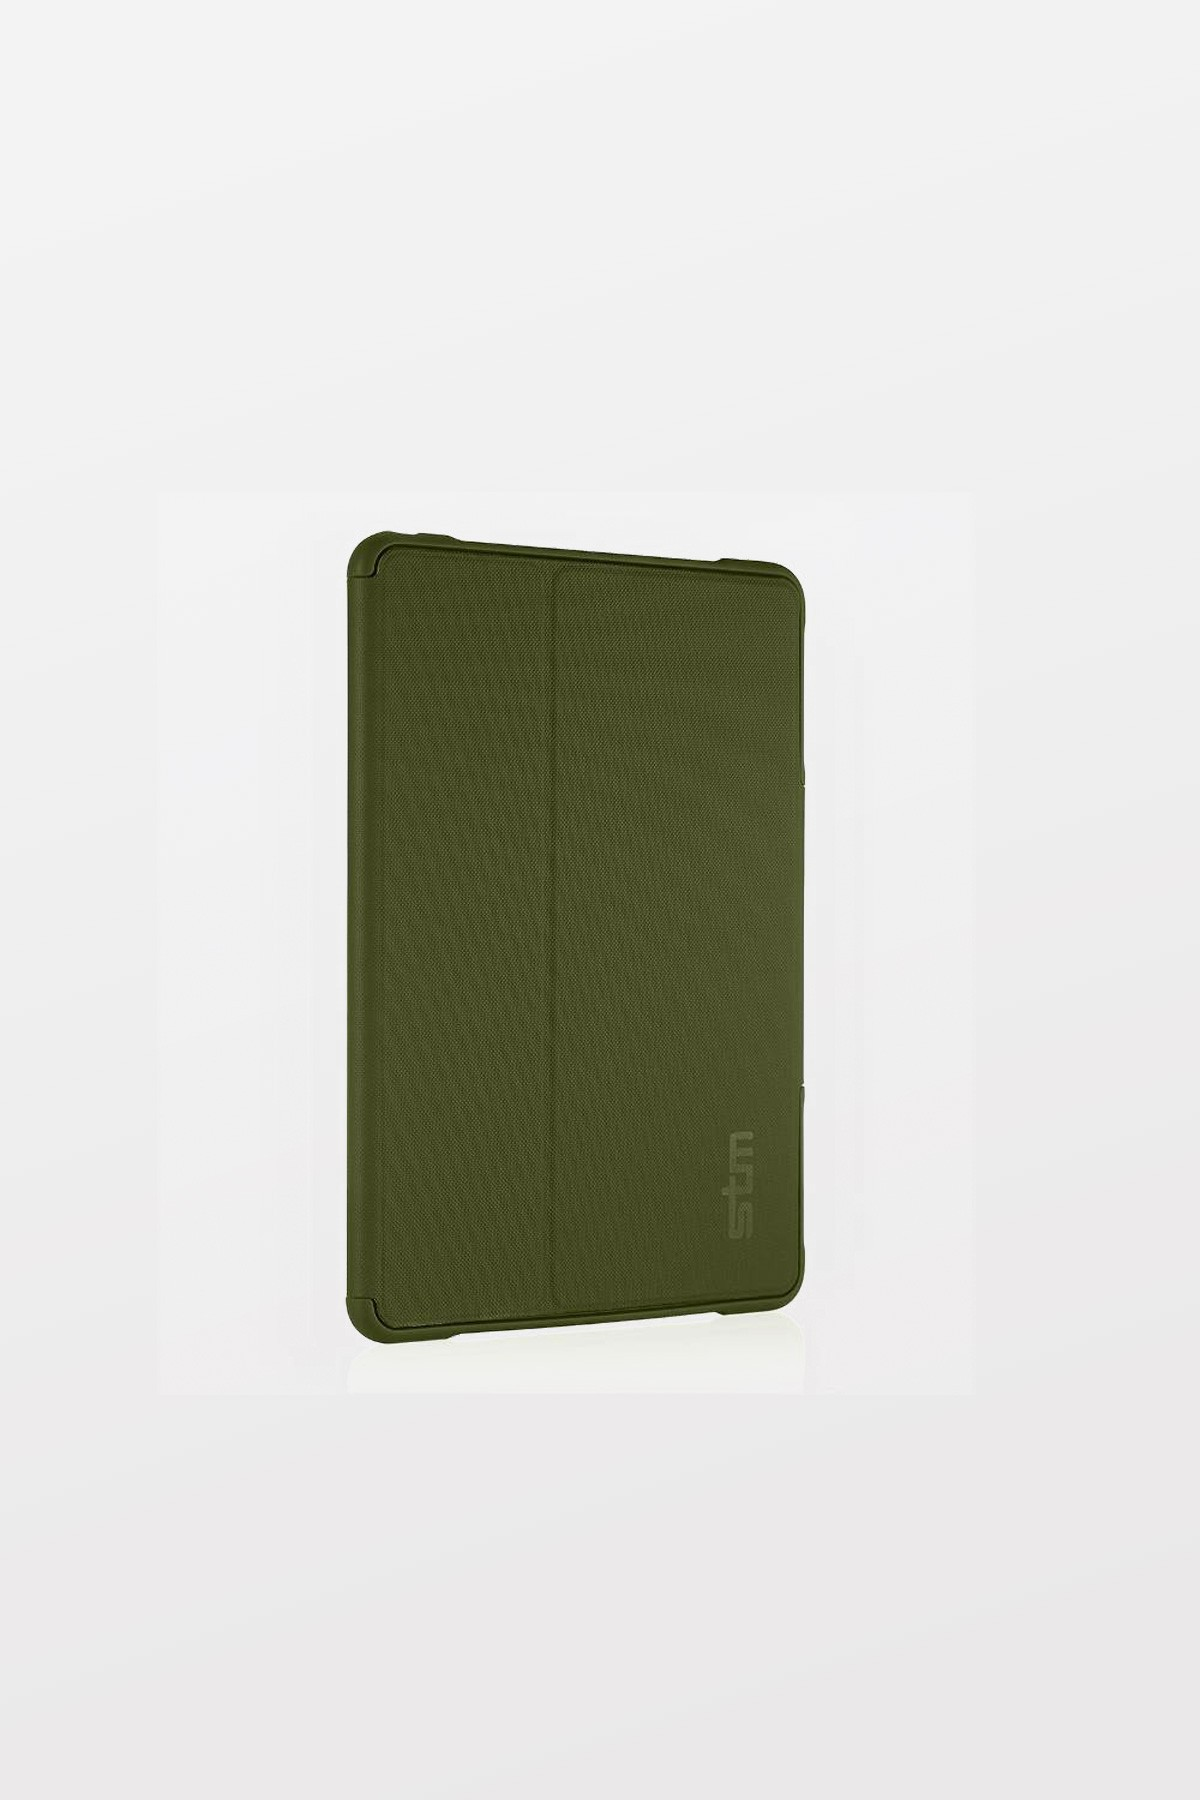 STM Dux for iPad Mini 4 - Pesto